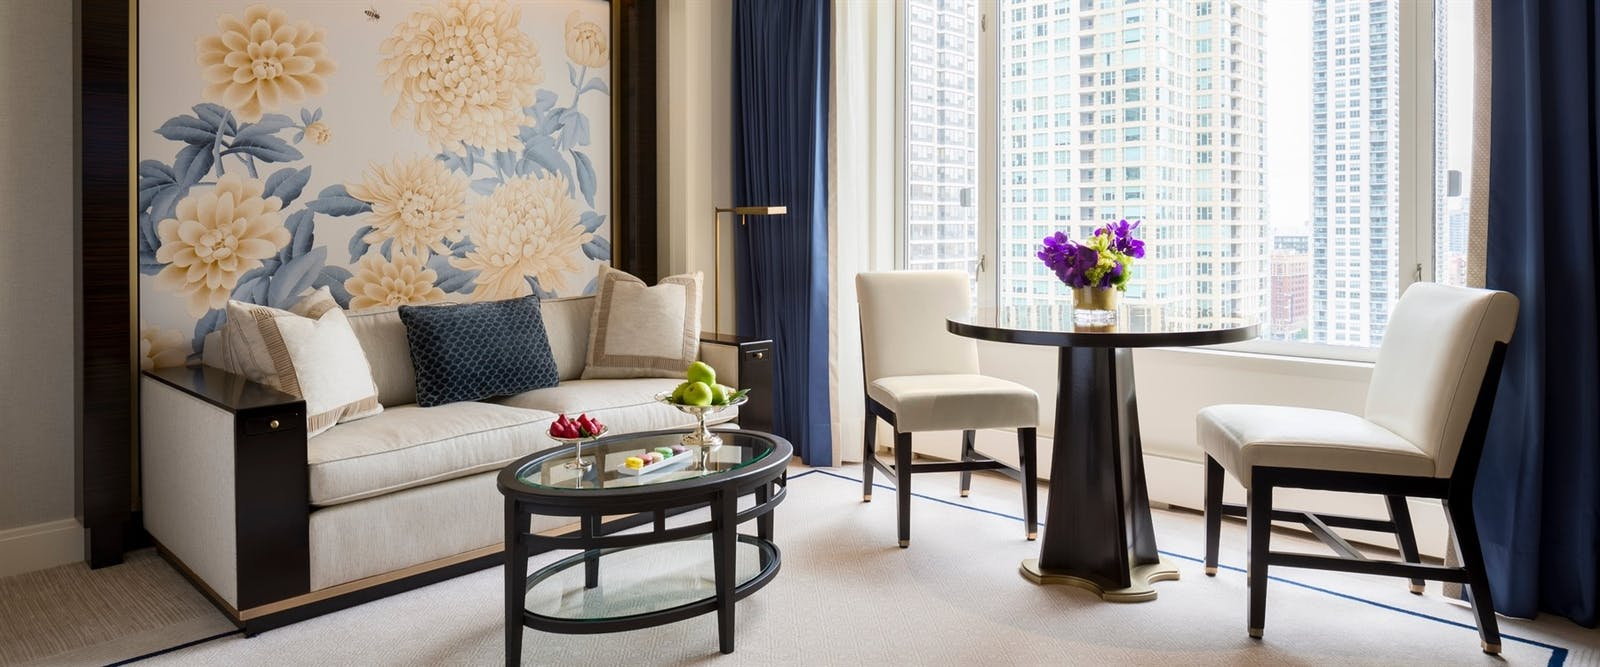 Deluxe Guestroom Living Area at Peninsula Chicago